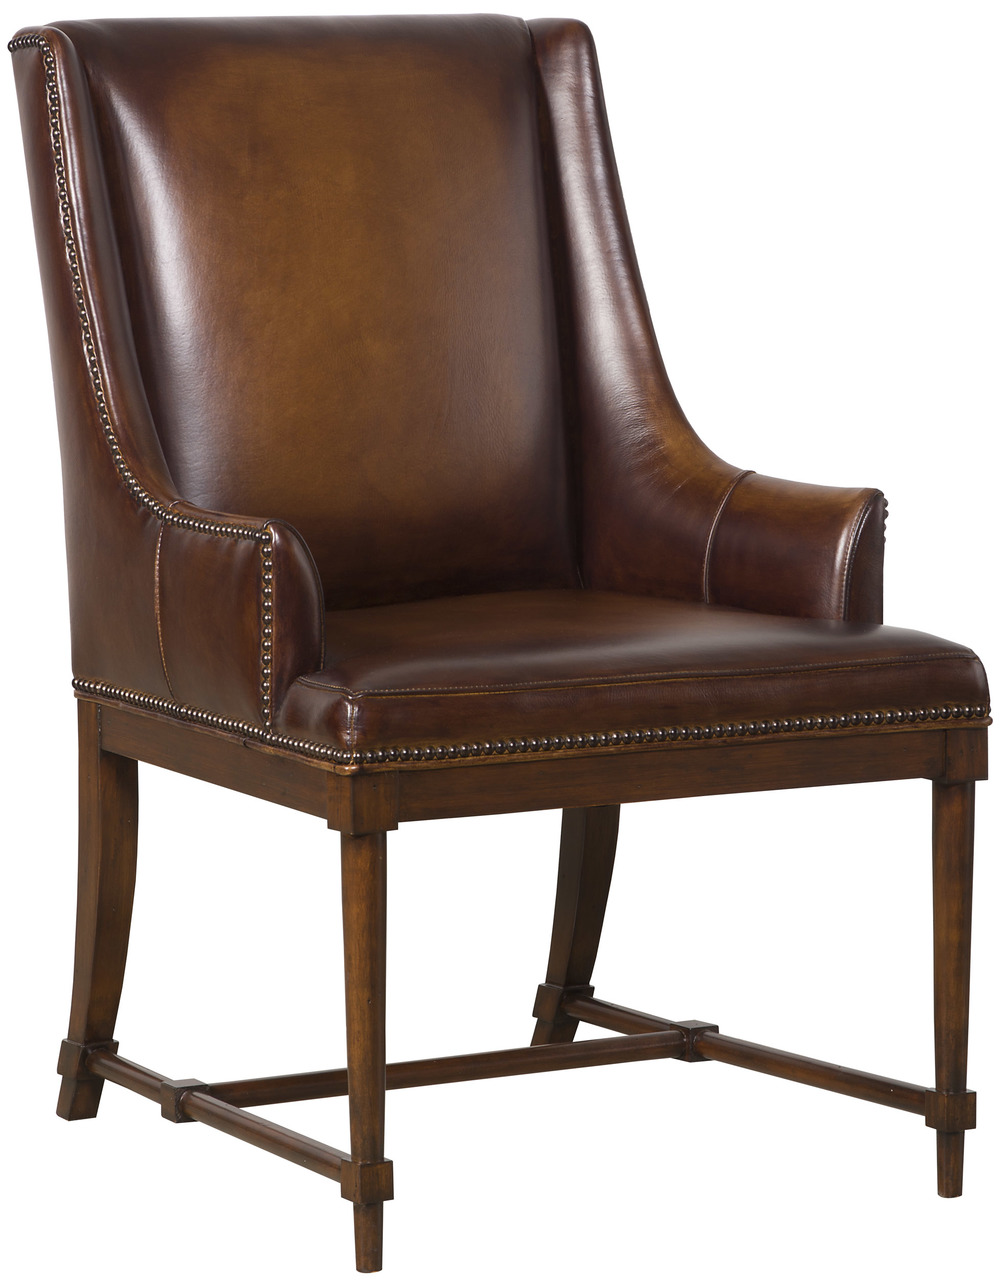 Vanguard Furniture - Chronos Arm Chair